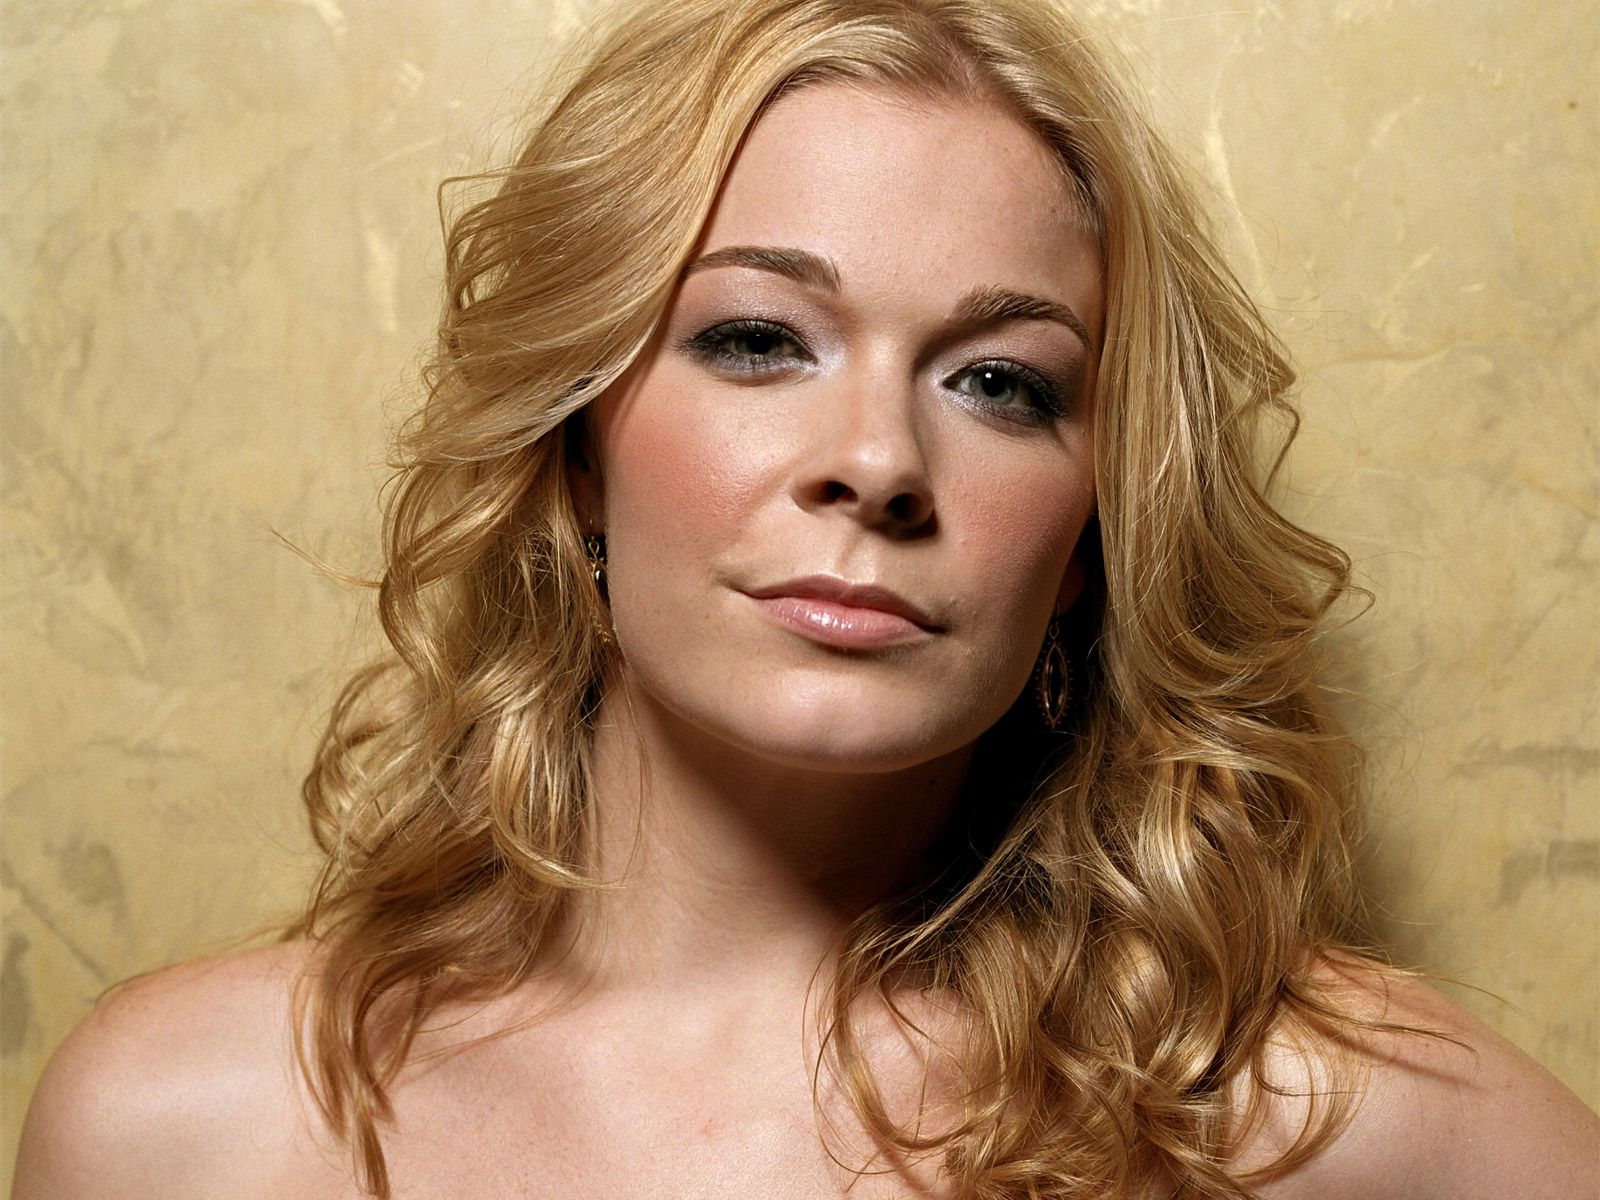 leann rimes please rememberleann rimes can't fight the moonlight, leann rimes mp3, leann rimes mp3 скачать, leann rimes how do i live, leann rimes песни, leann rimes how do i live скачать, leann rimes how do i live перевод, leann rimes blue, leann rimes please remember, leann rimes the story, leann rimes please remember скачать, leann rimes long live love, leann rimes - i need you, leann rimes blue перевод, leann rimes remnants, leann rimes unchained melody, leann rimes скачать песни, leann rimes unchained melody скачать, leann rimes фото, leann rimes can't